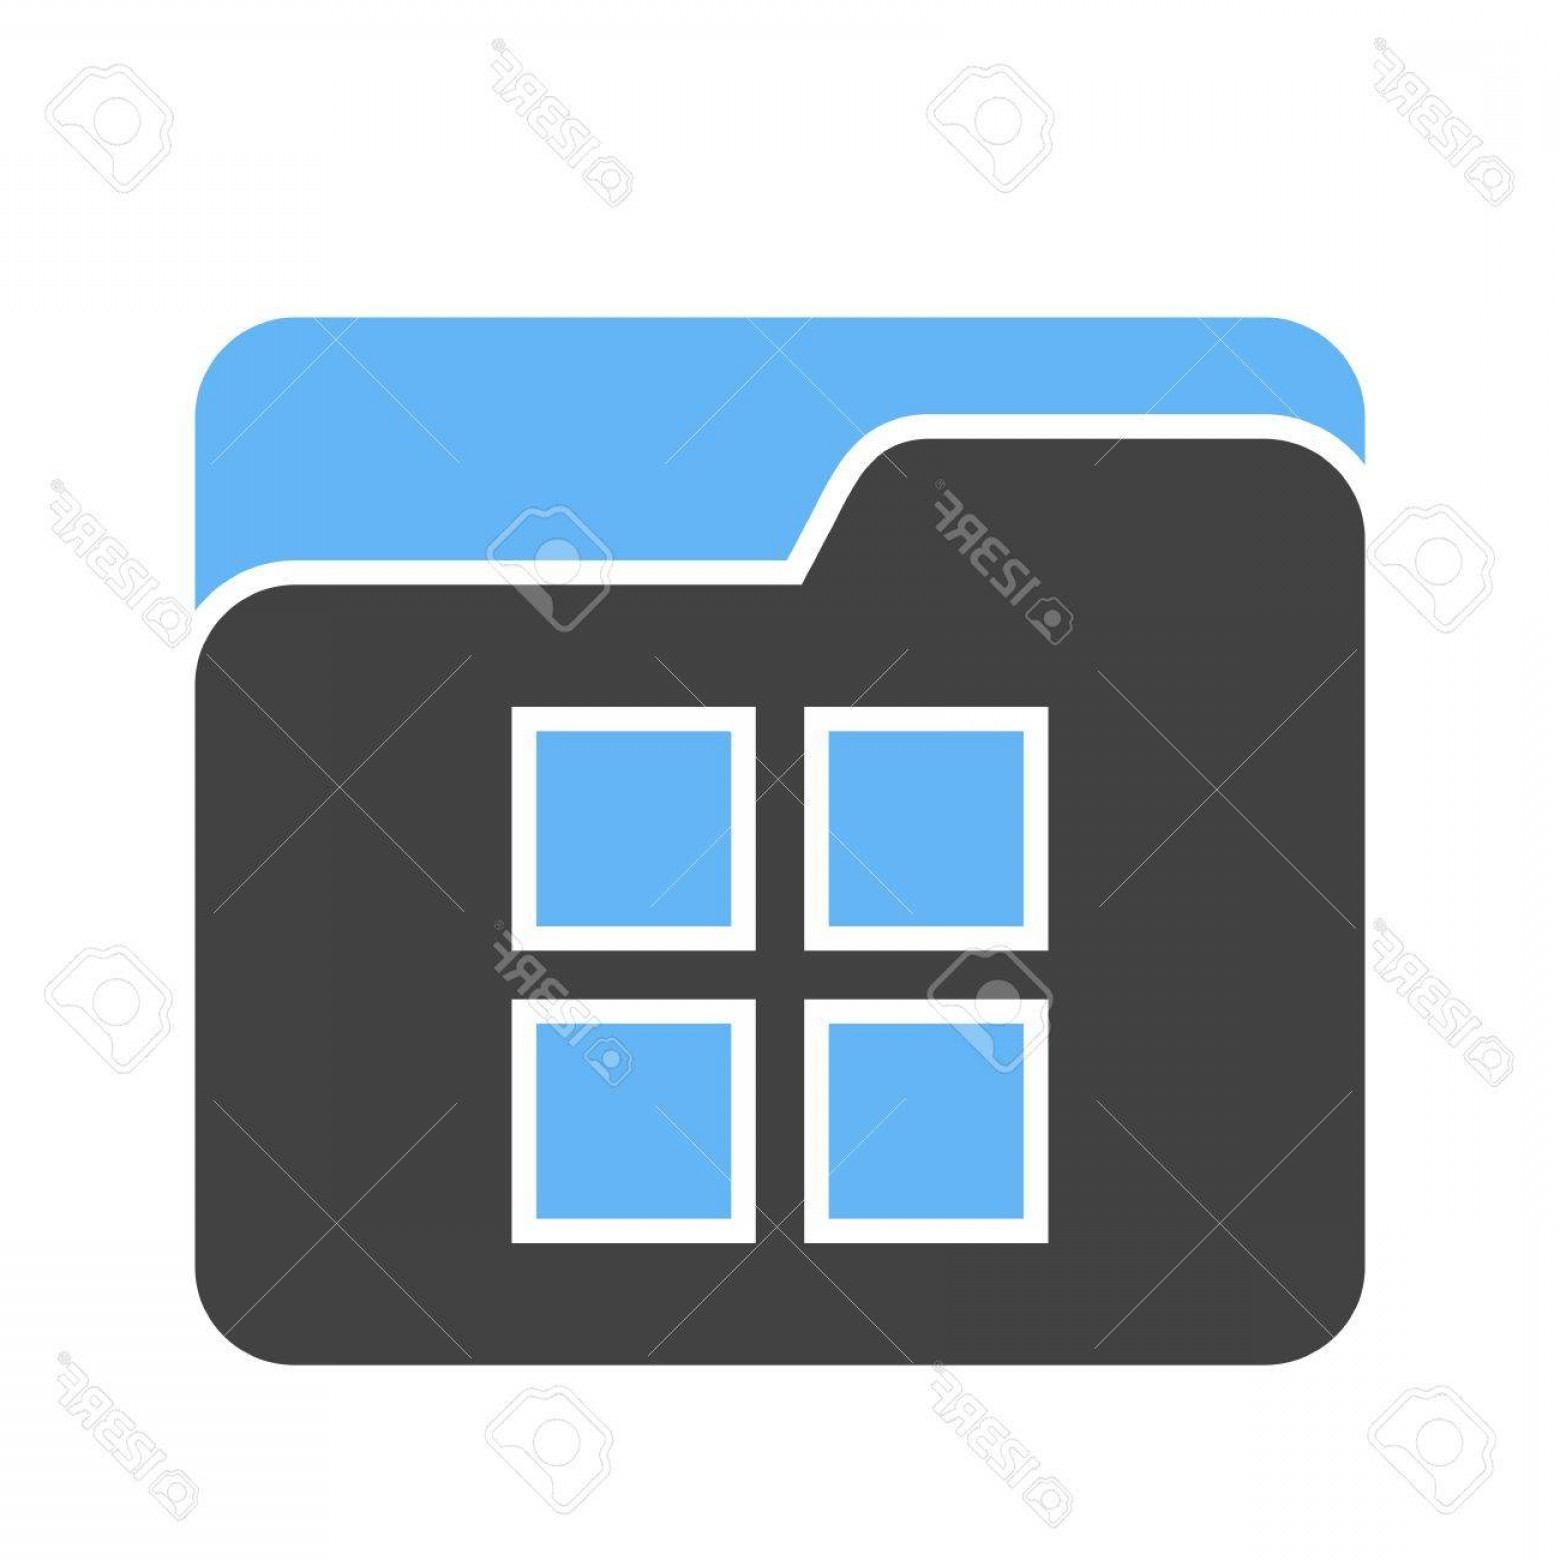 Folder Tab Vectors: Photostock Vector Management File Document Icon Vector Image Can Also Be Used For Mobile Apps Phone Tab Bar And Settin